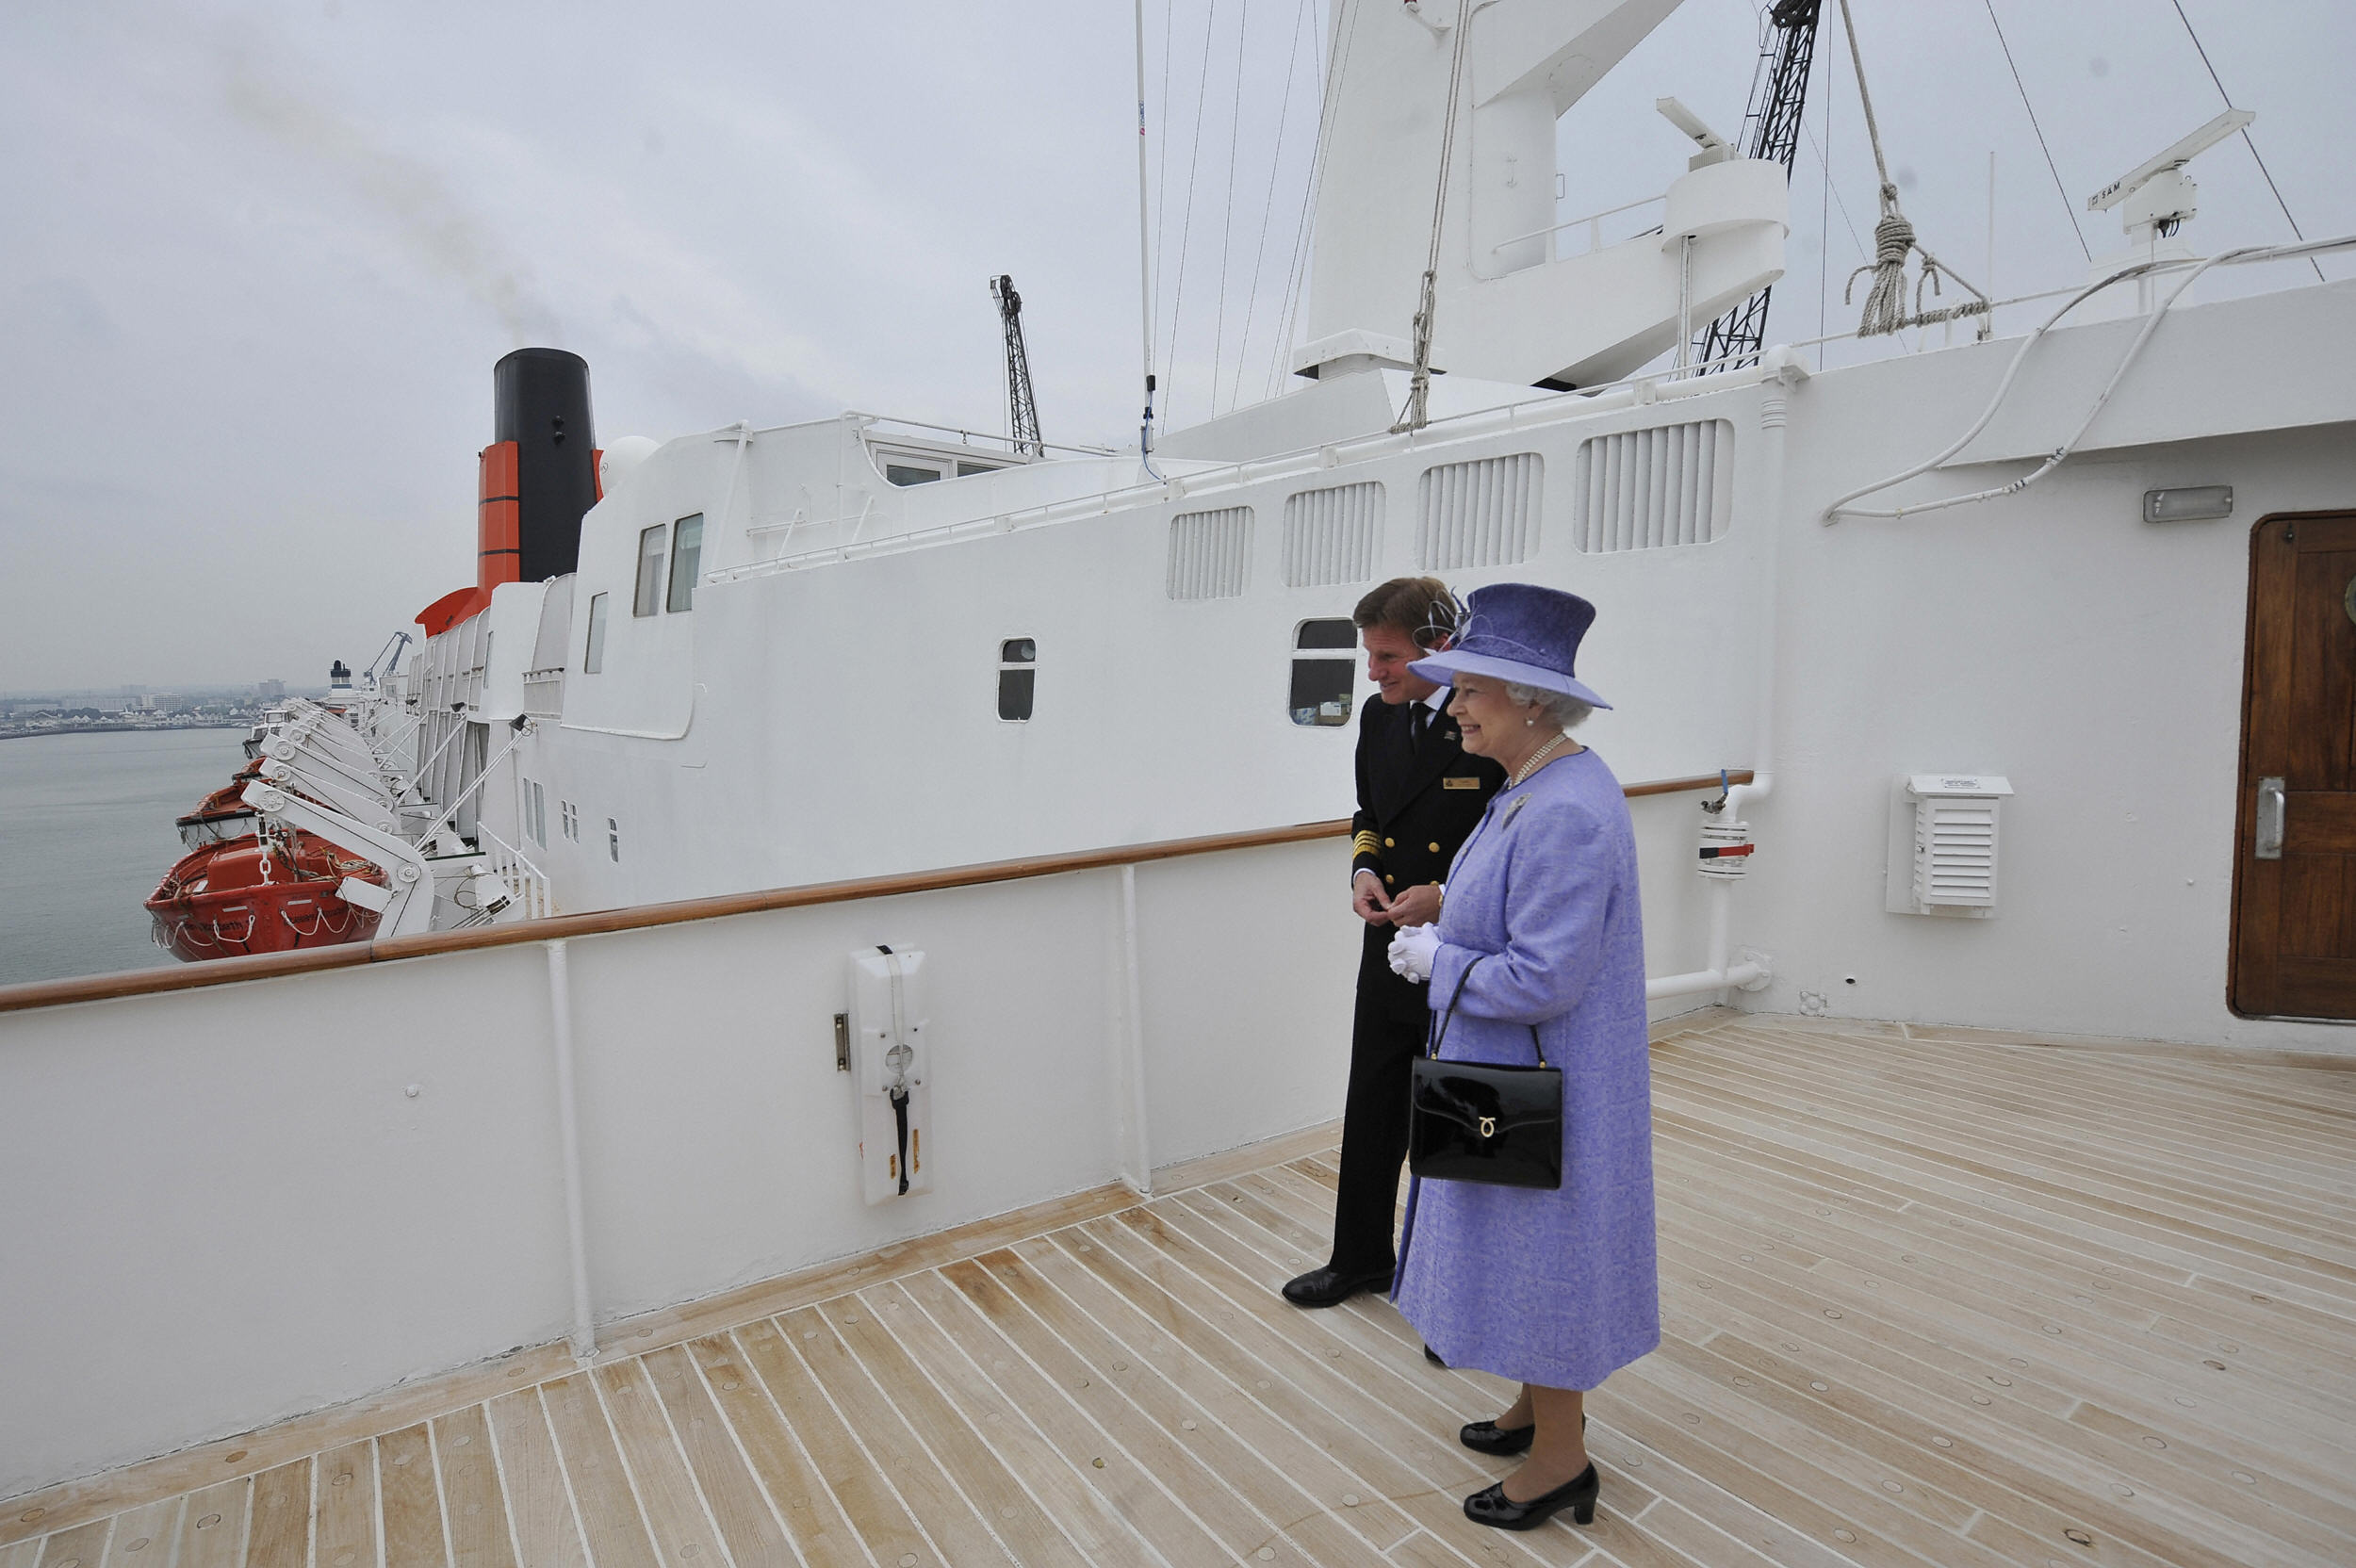 Britain's Queen Elizabeth II (R) is pictured during her visit of the Queen Elizabeth 2